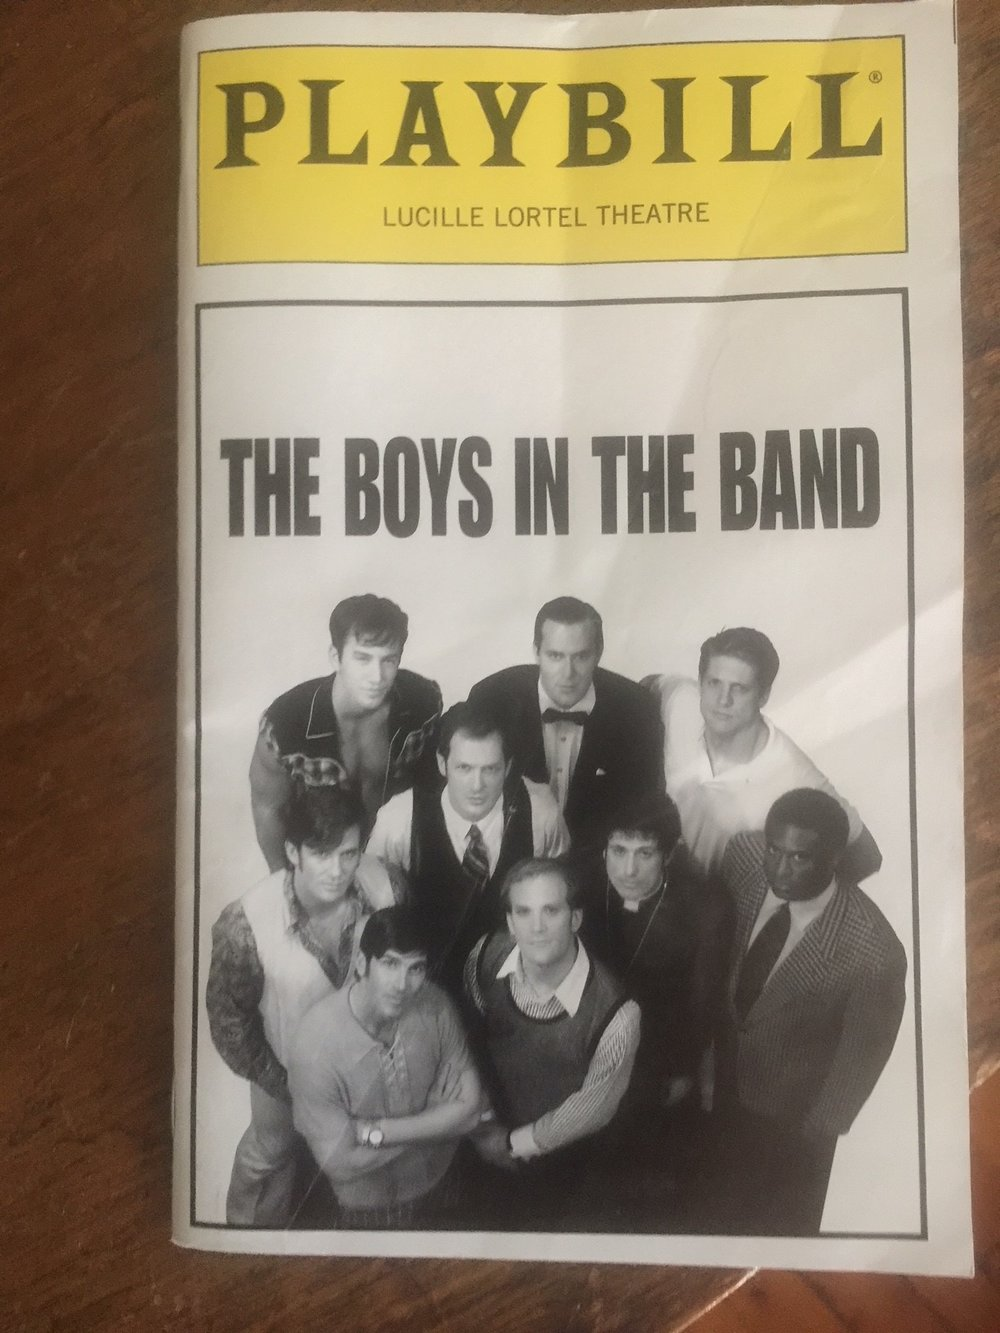 1996, off-Broadway